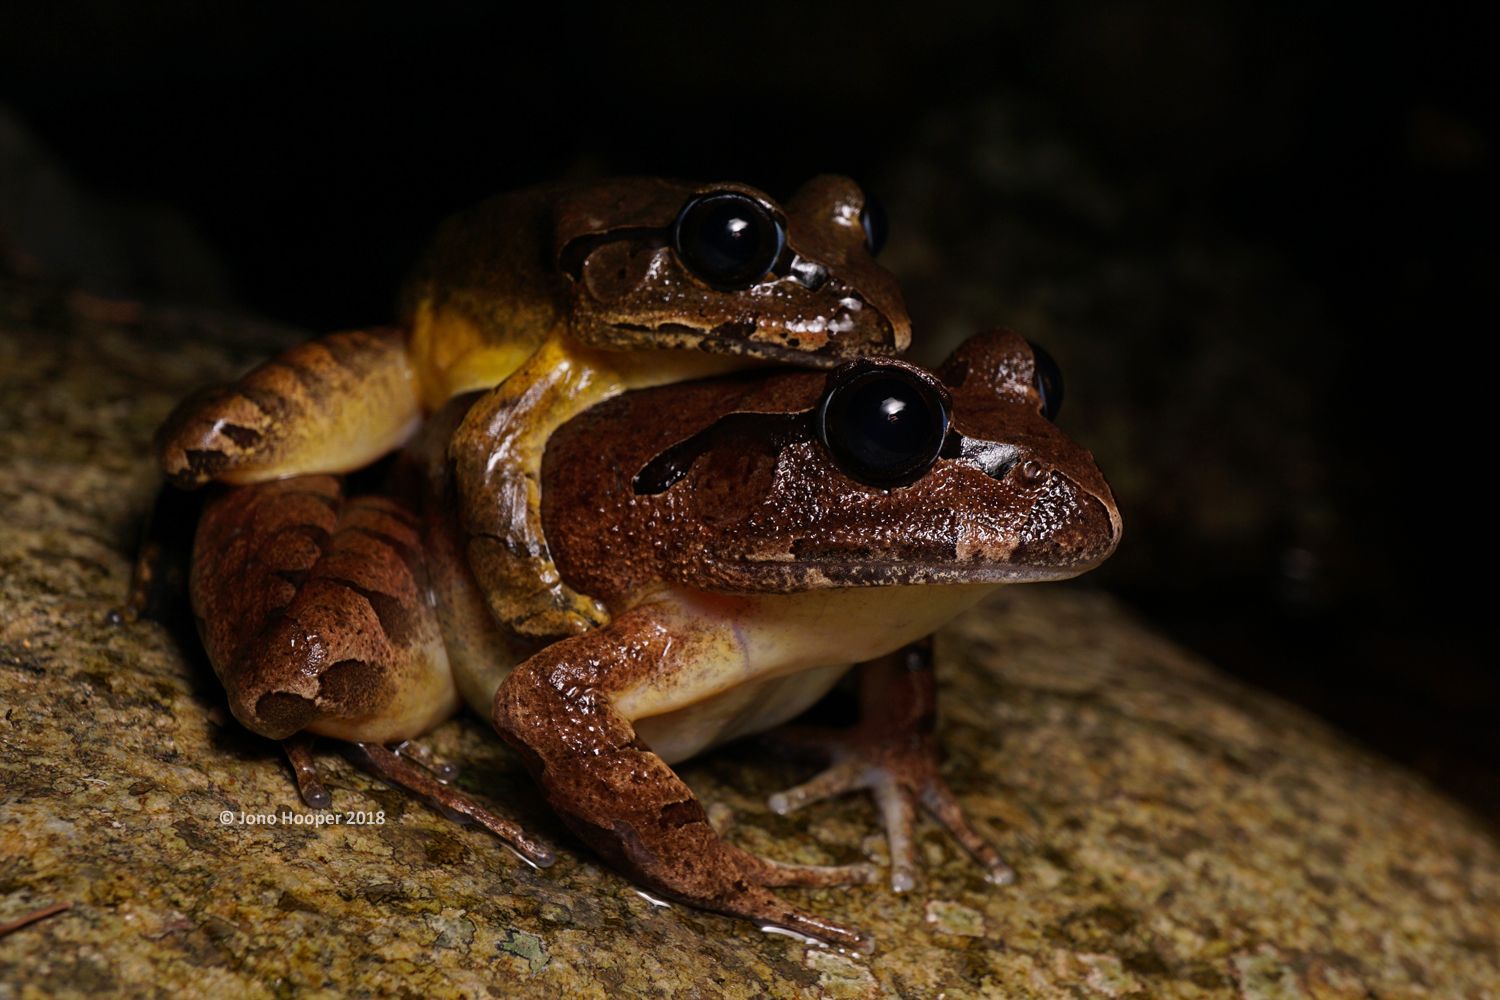 Stuttering Frogs (Mixophyes balbus) in amplexus (mating position).